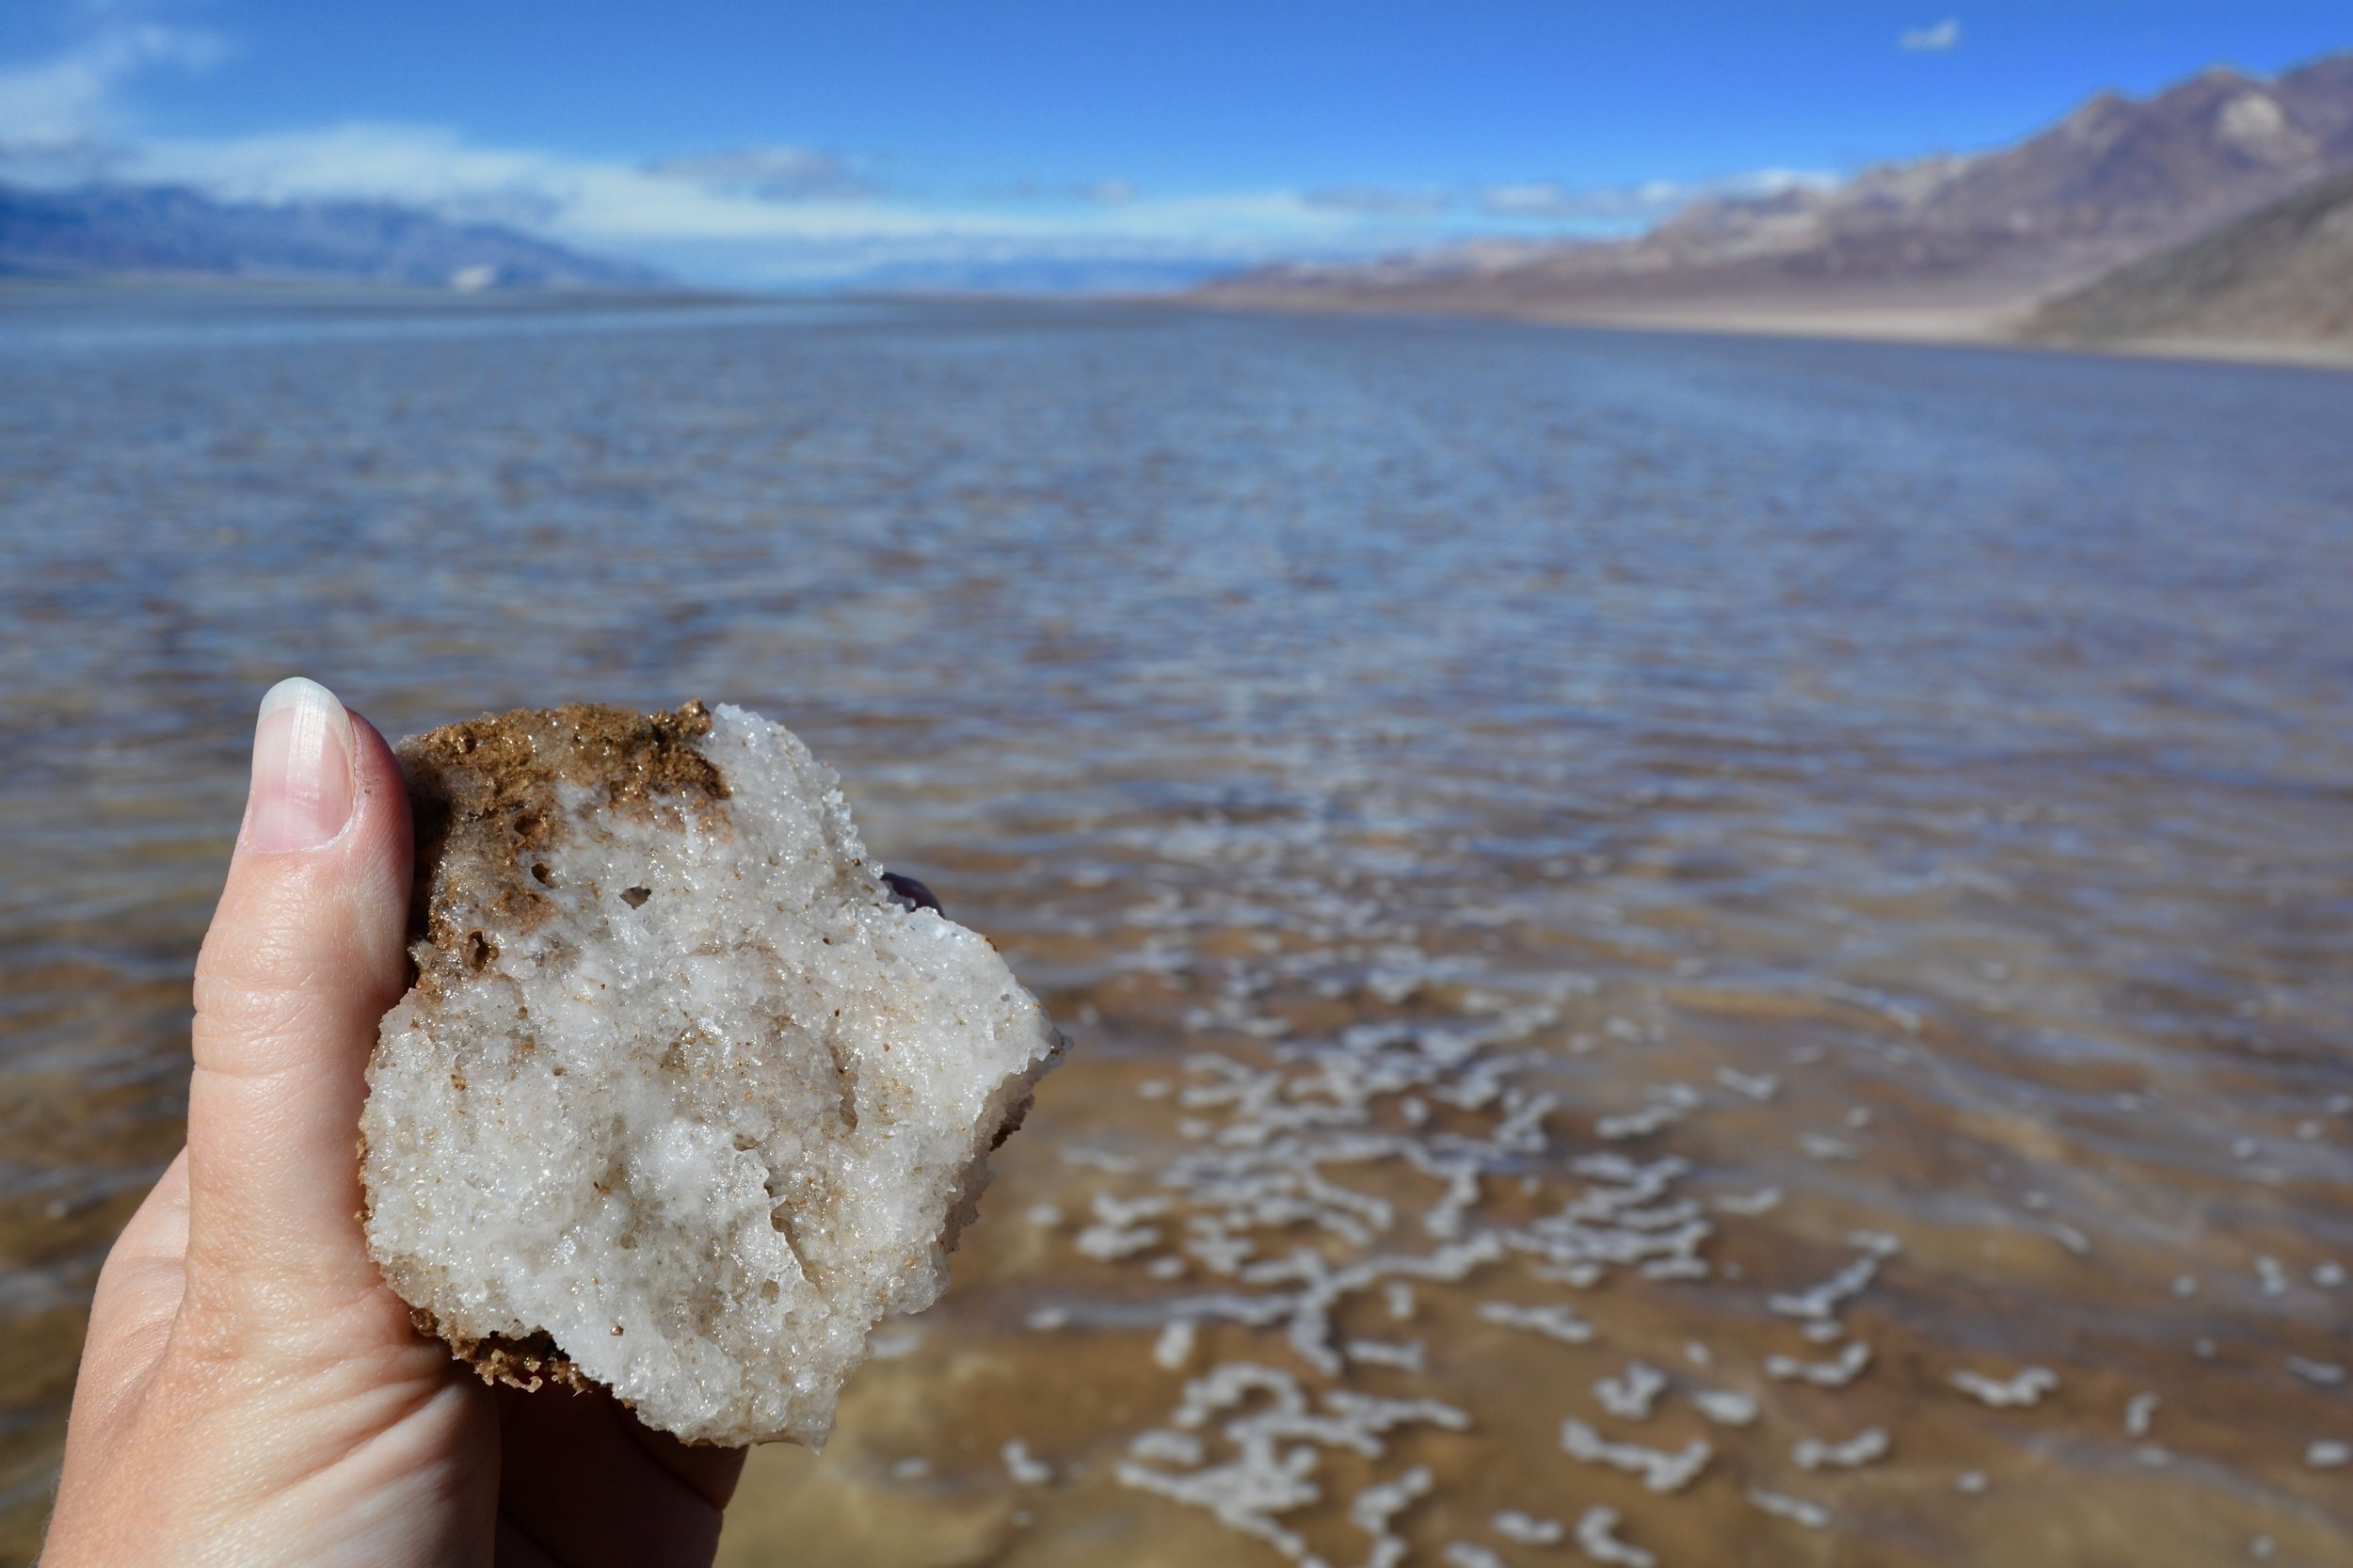 Salt in Badwater Basin, which was underwater during my visit